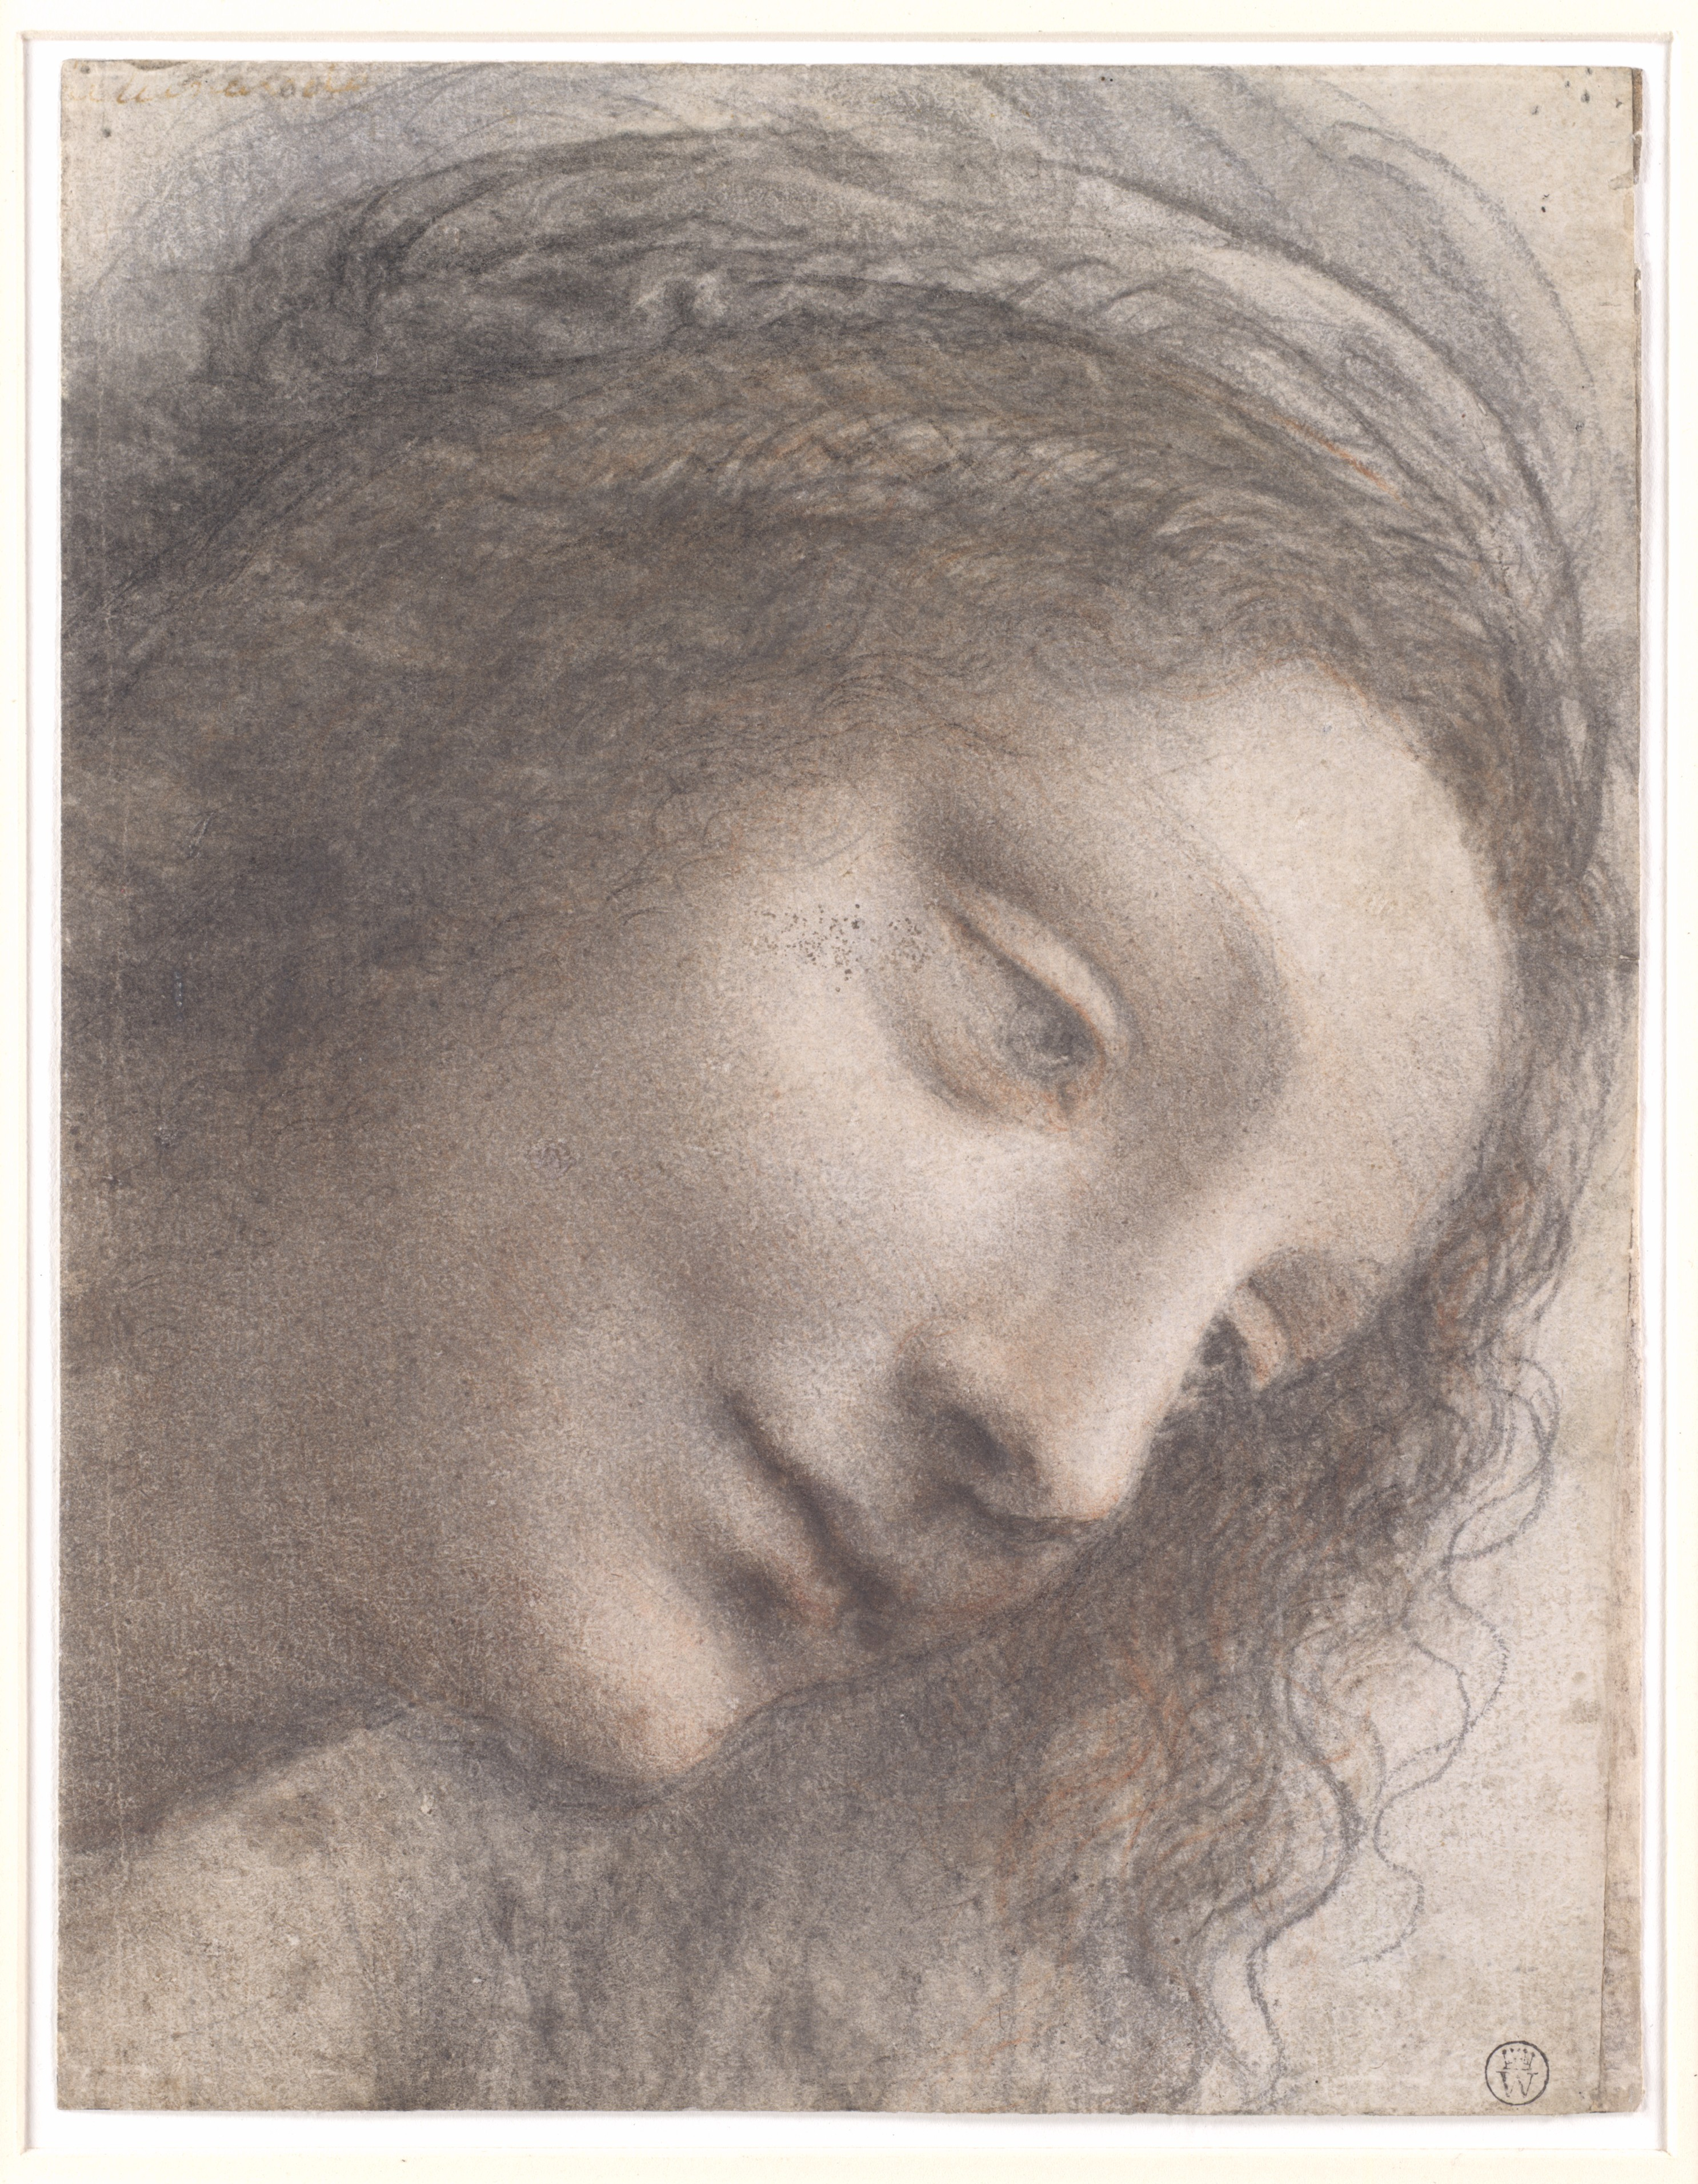 Drawing by Leonardo da Vinci